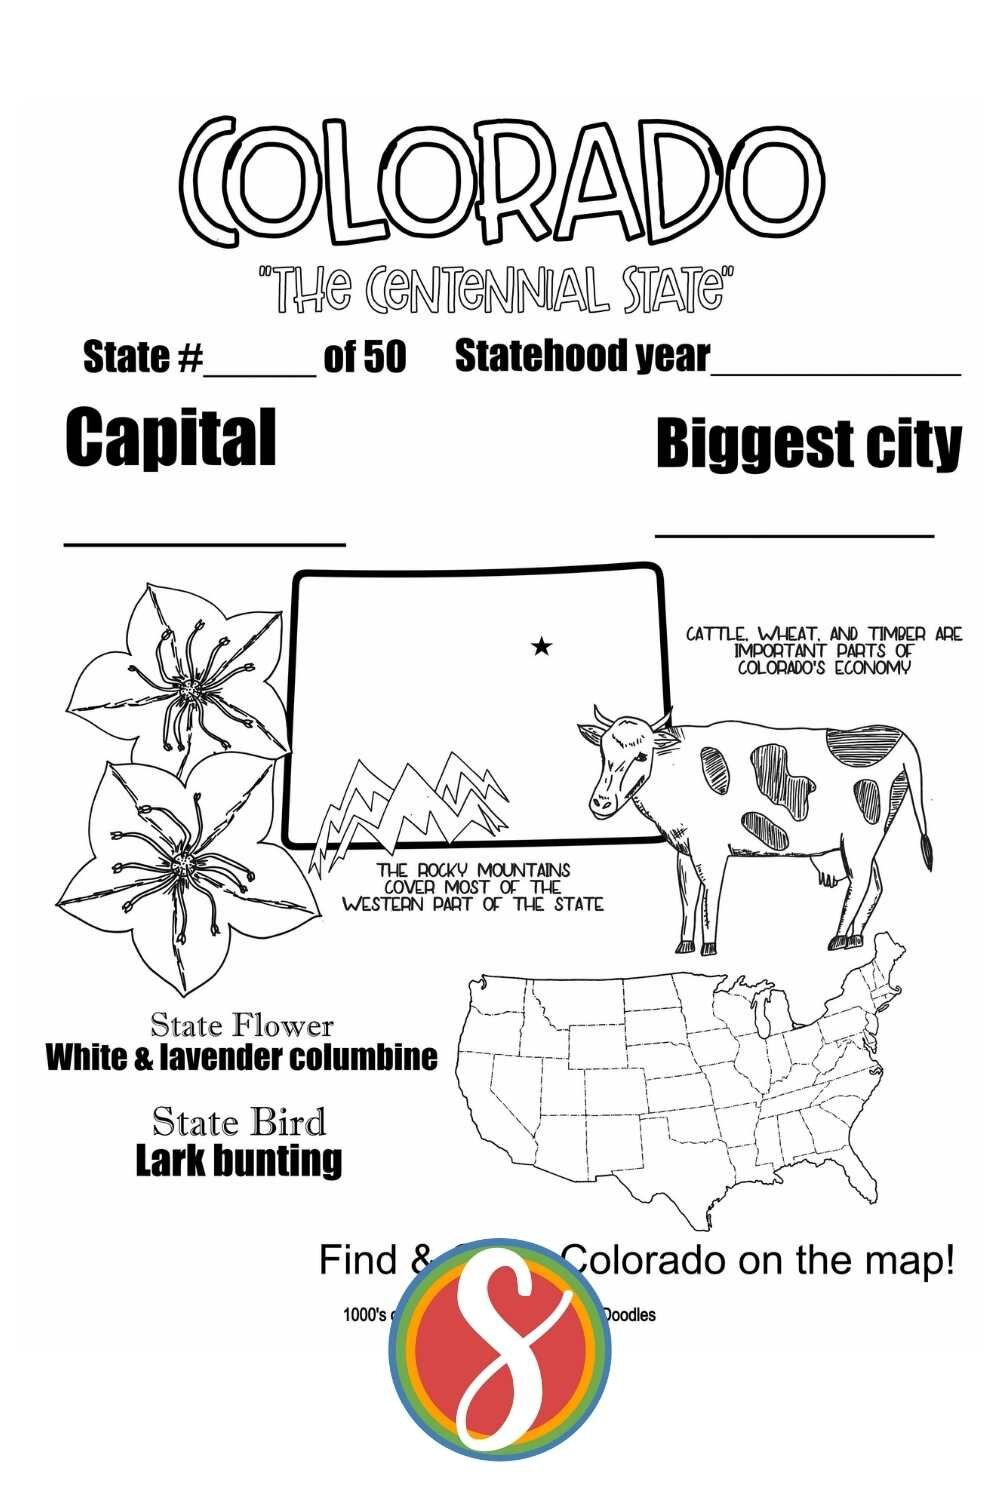 Free printable Colorado colour sheets from Stevie Doodles - Colorado activity pages you can print and also color today.